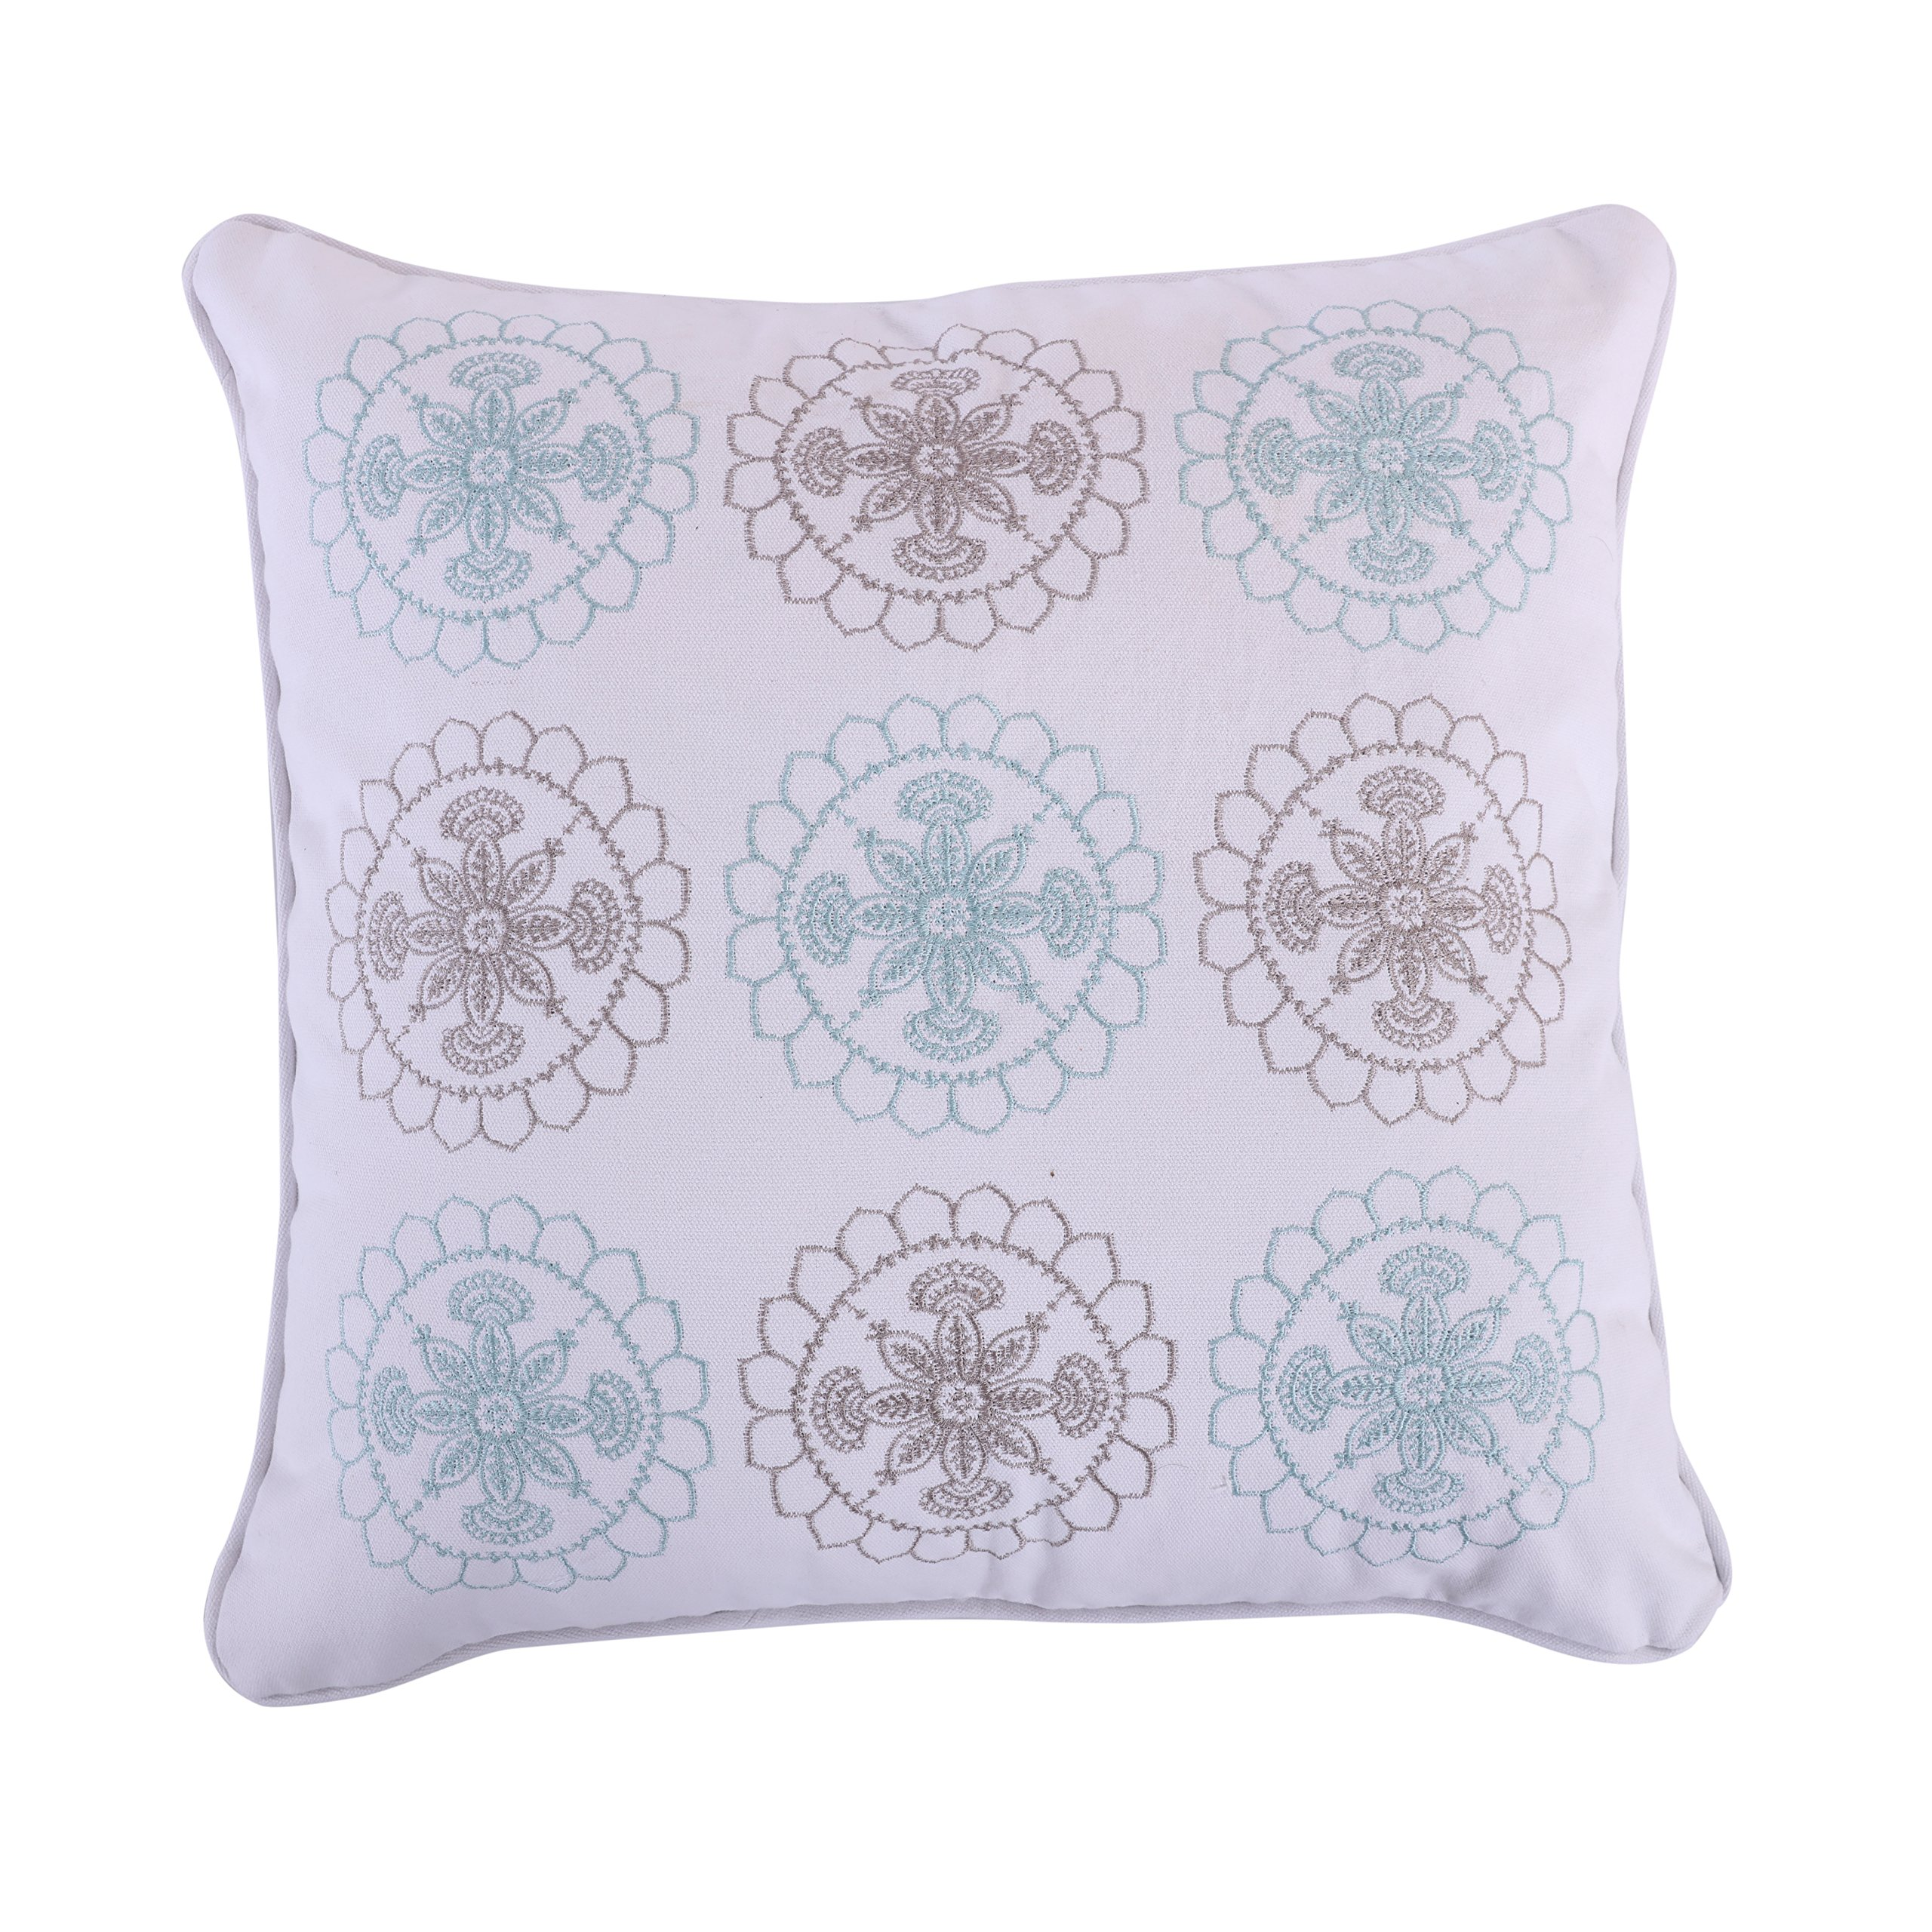 Levtex Spruce Spa Embroidered Pillow, Blue, Grey